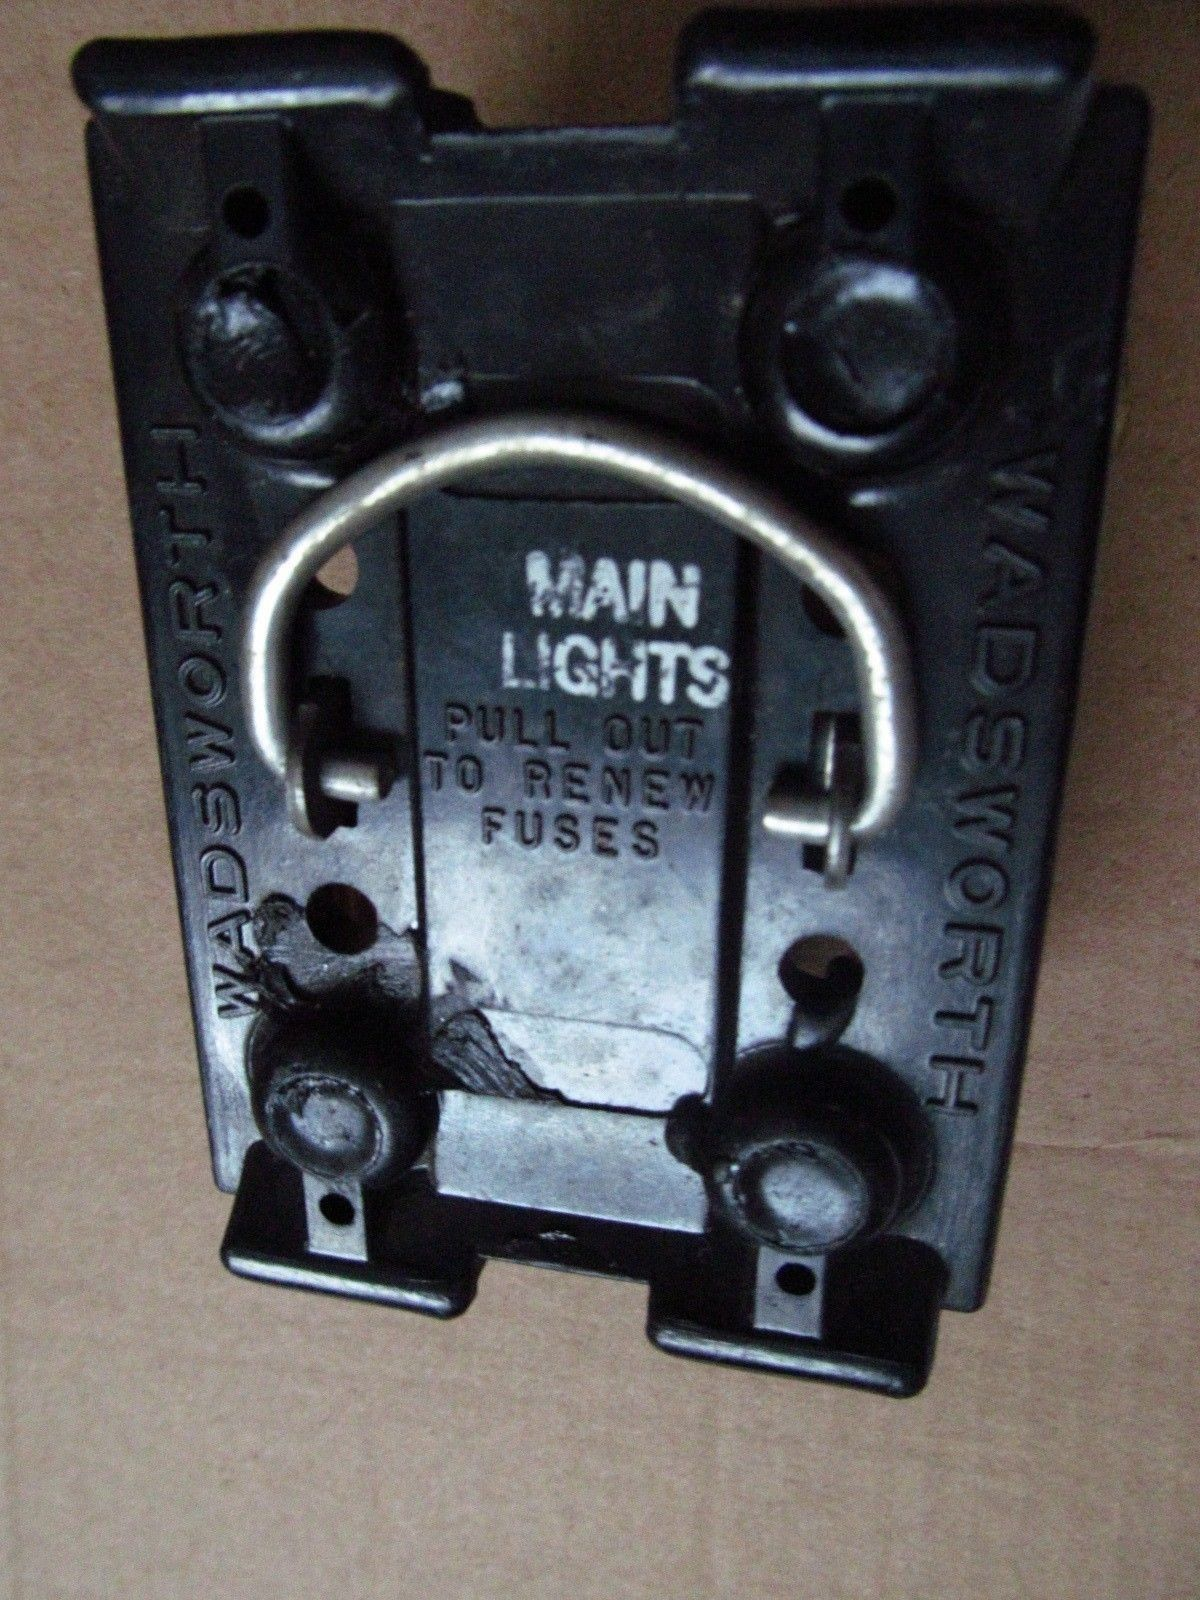 60 amp wadsworth fuse holder pull out / free 60a & 30a ... crx fuse box pin outs #9